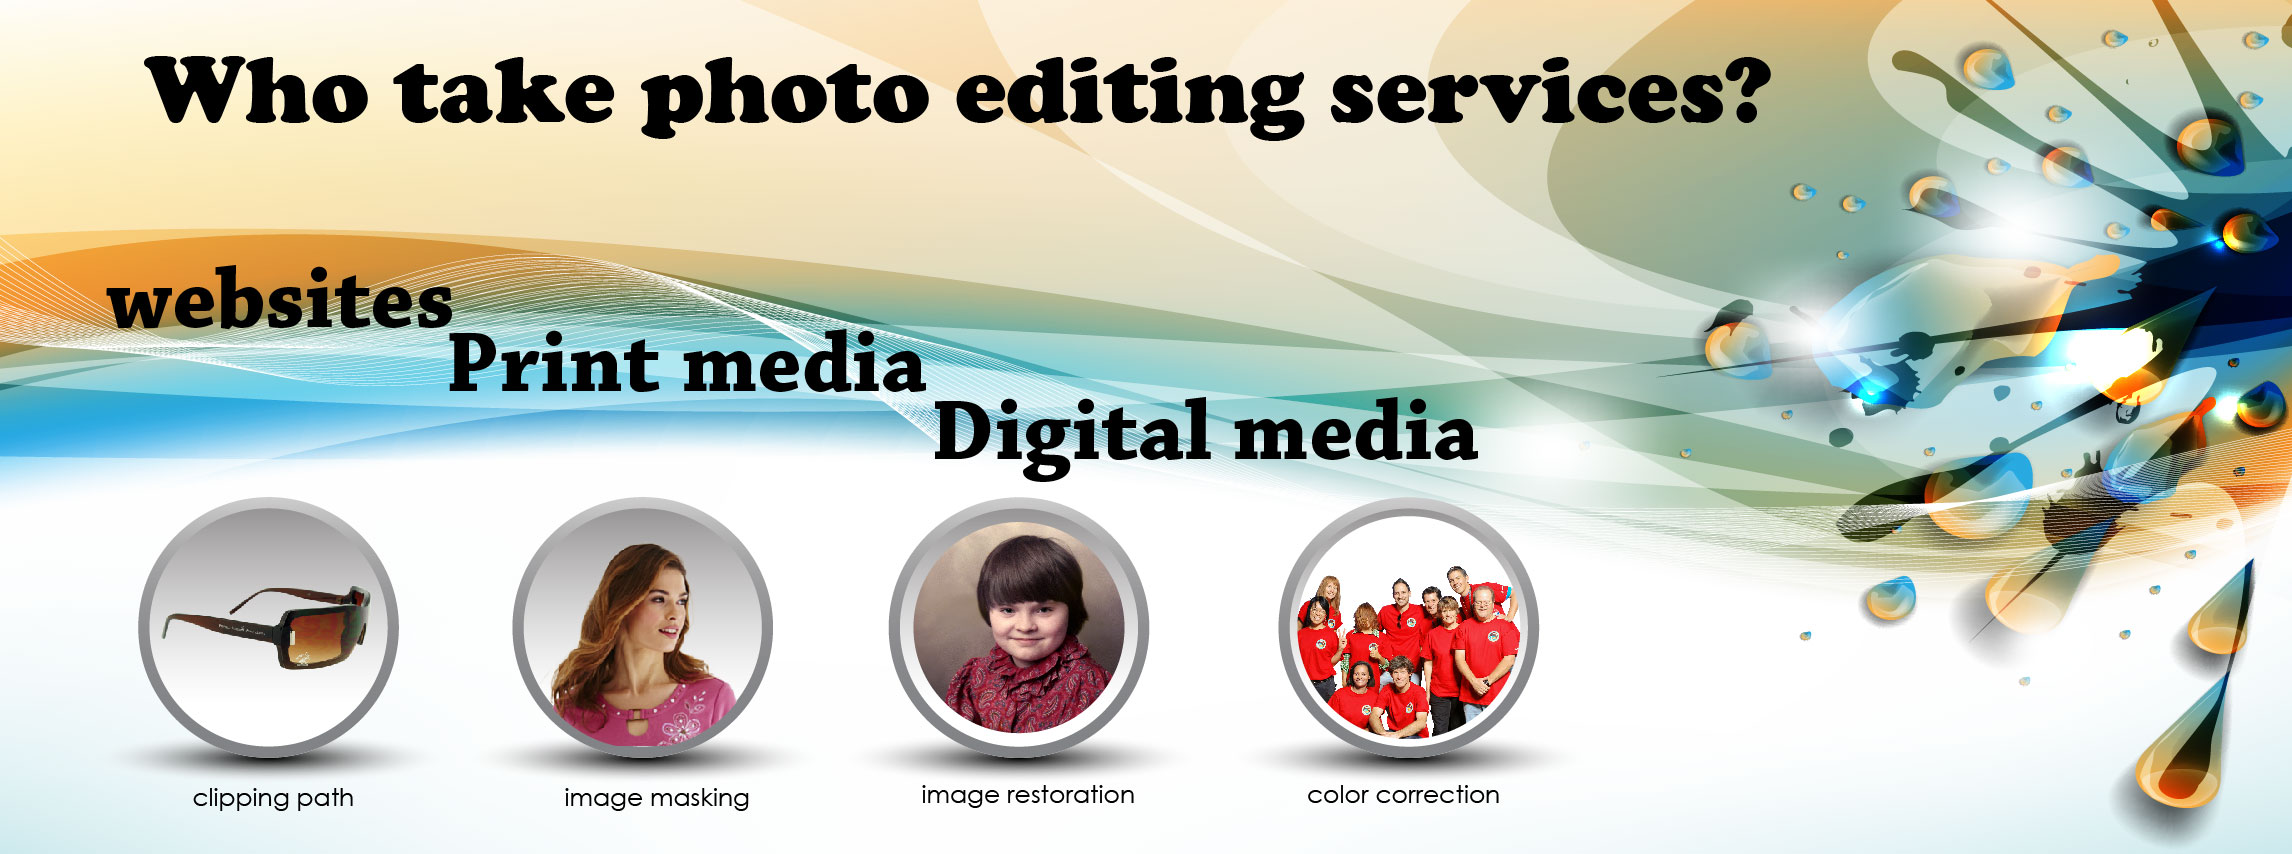 Who take photo editing services?